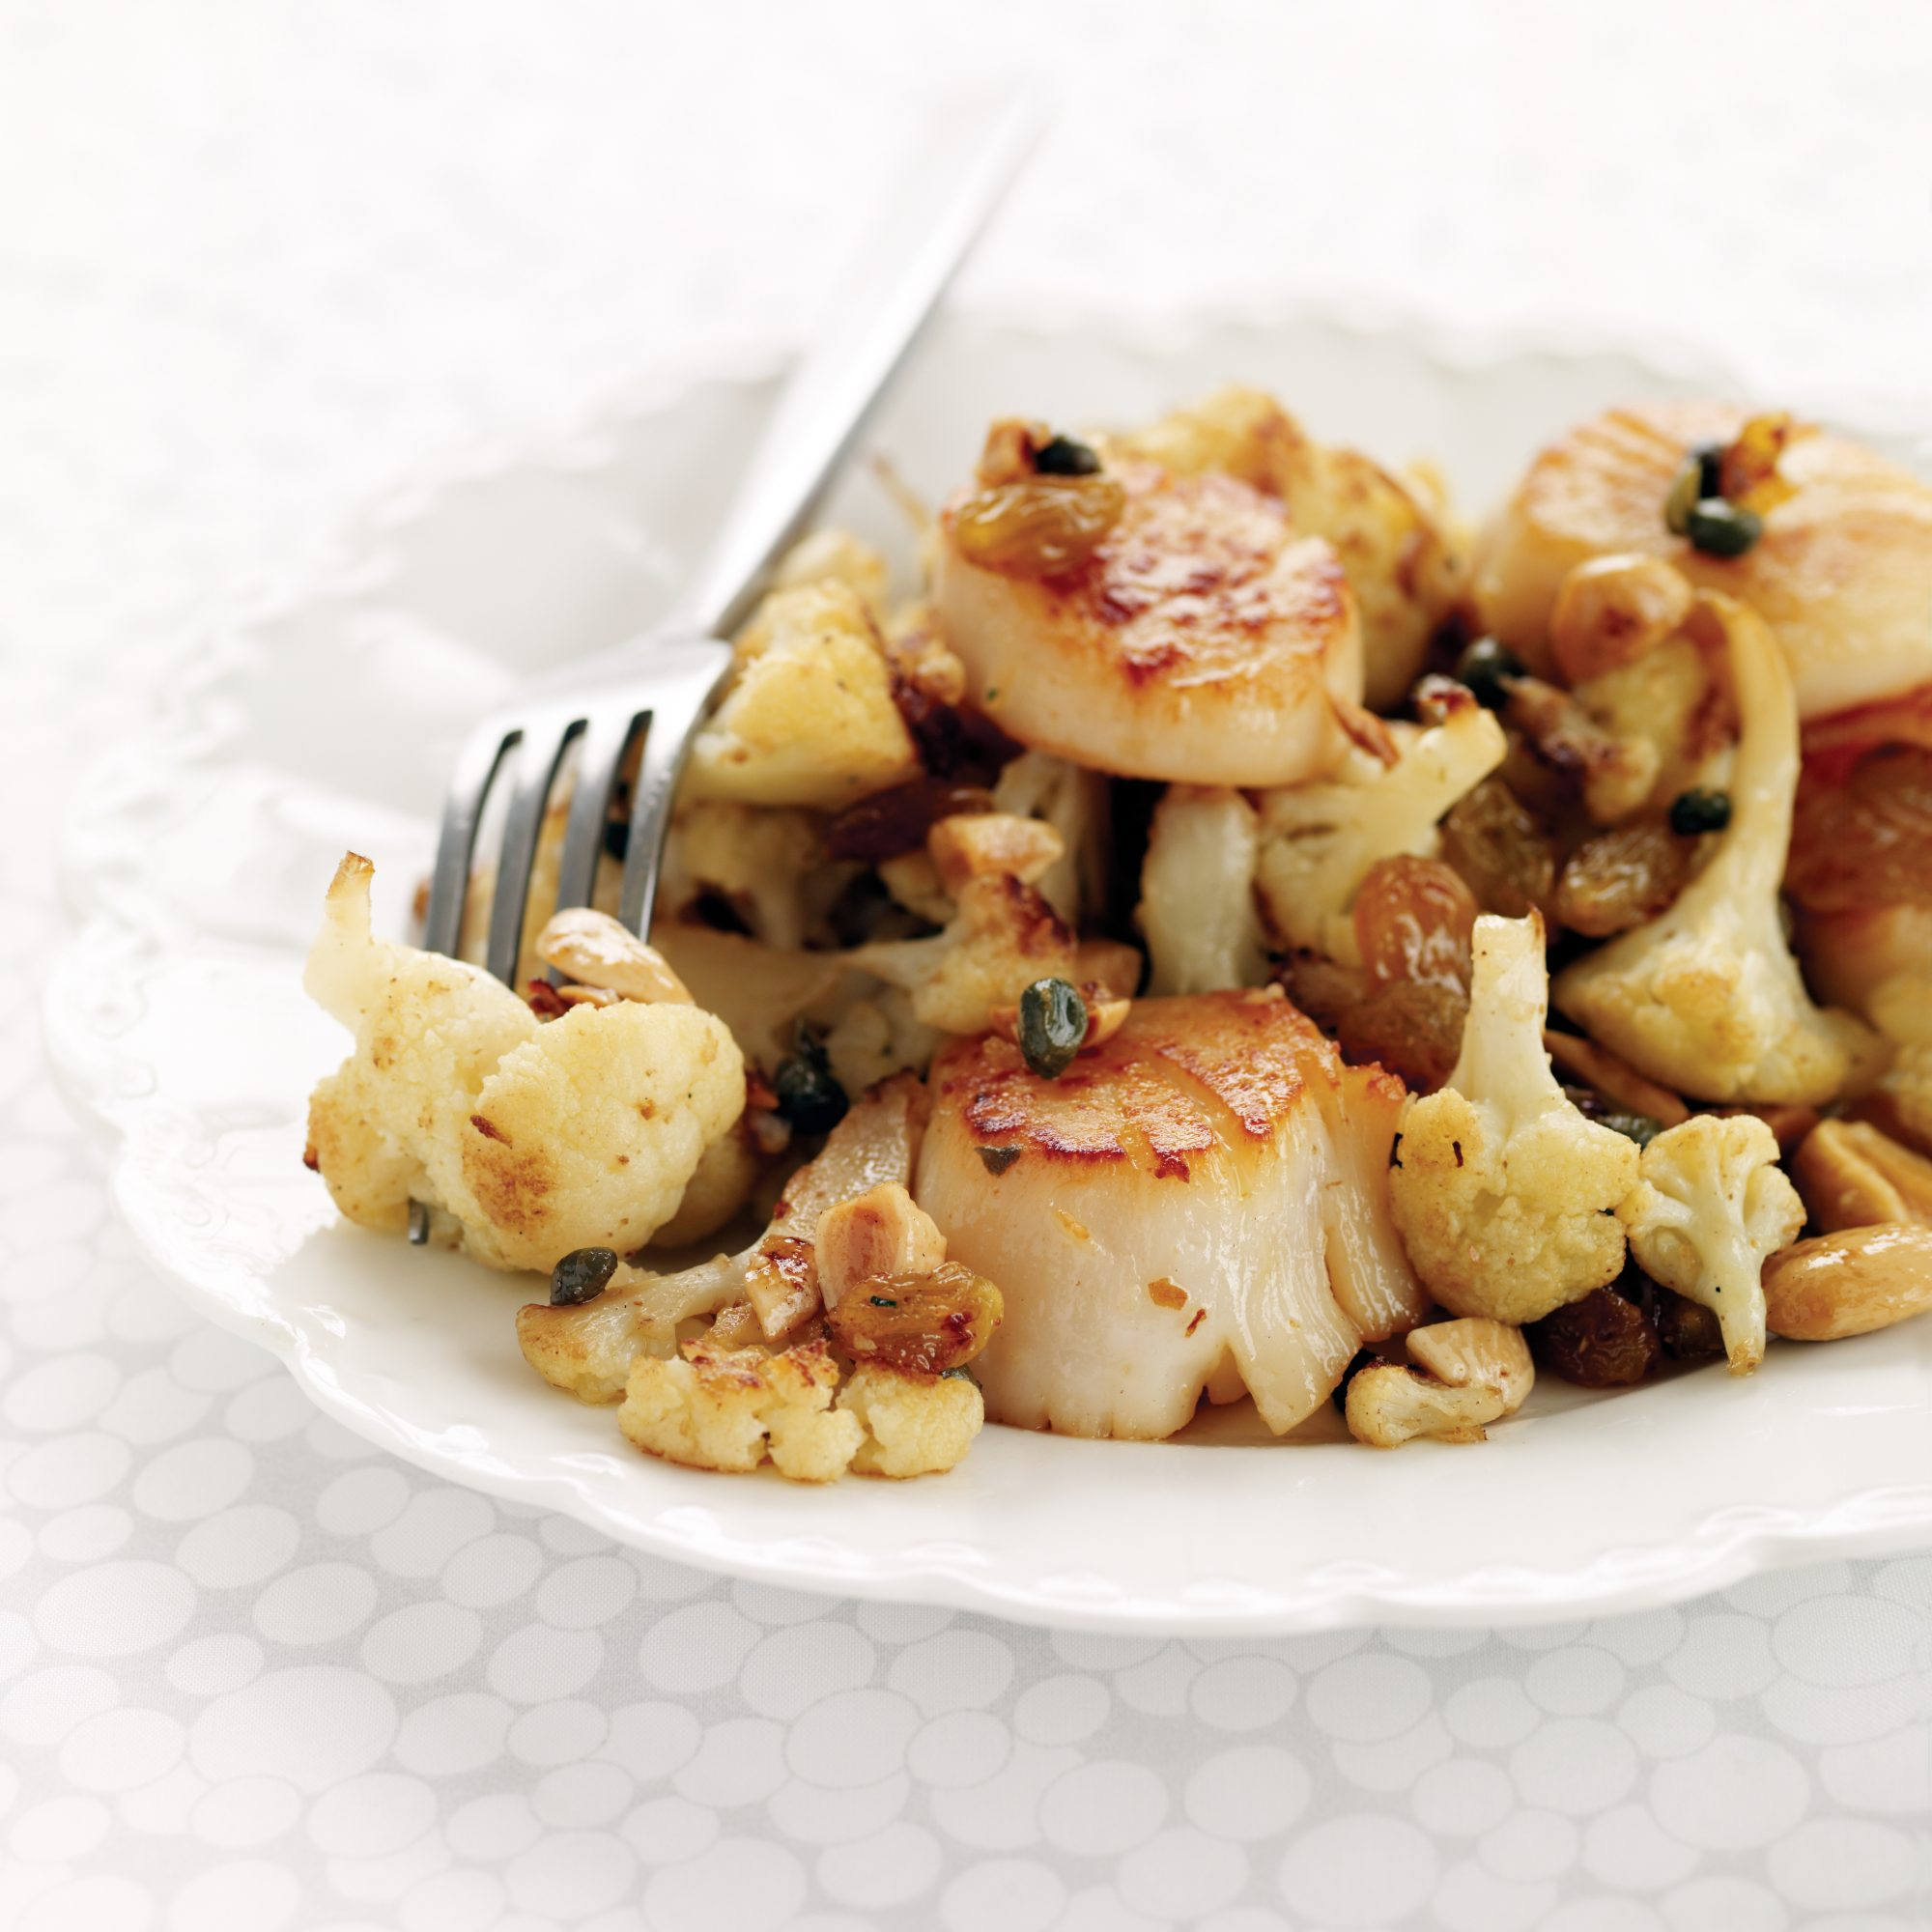 Seared Scallops with Cauliflower, Capers and Raisins